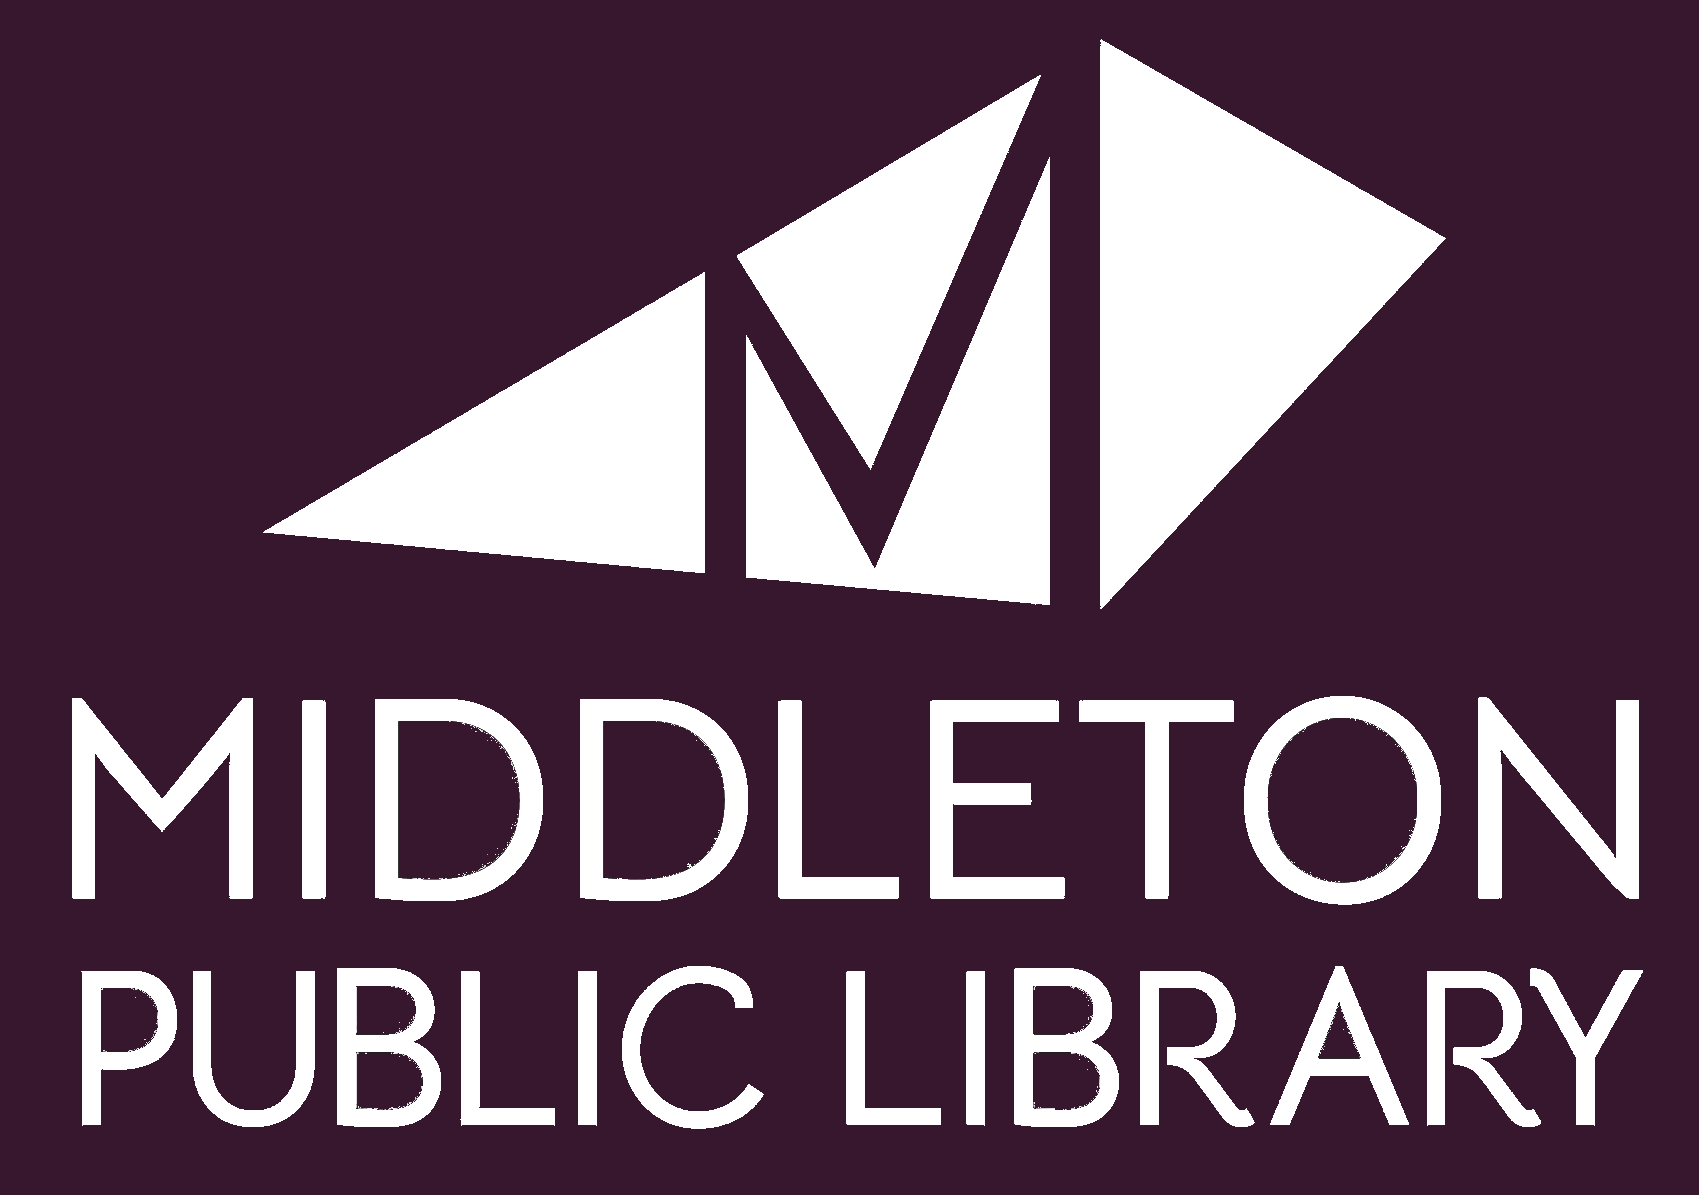 Middleton Public Library